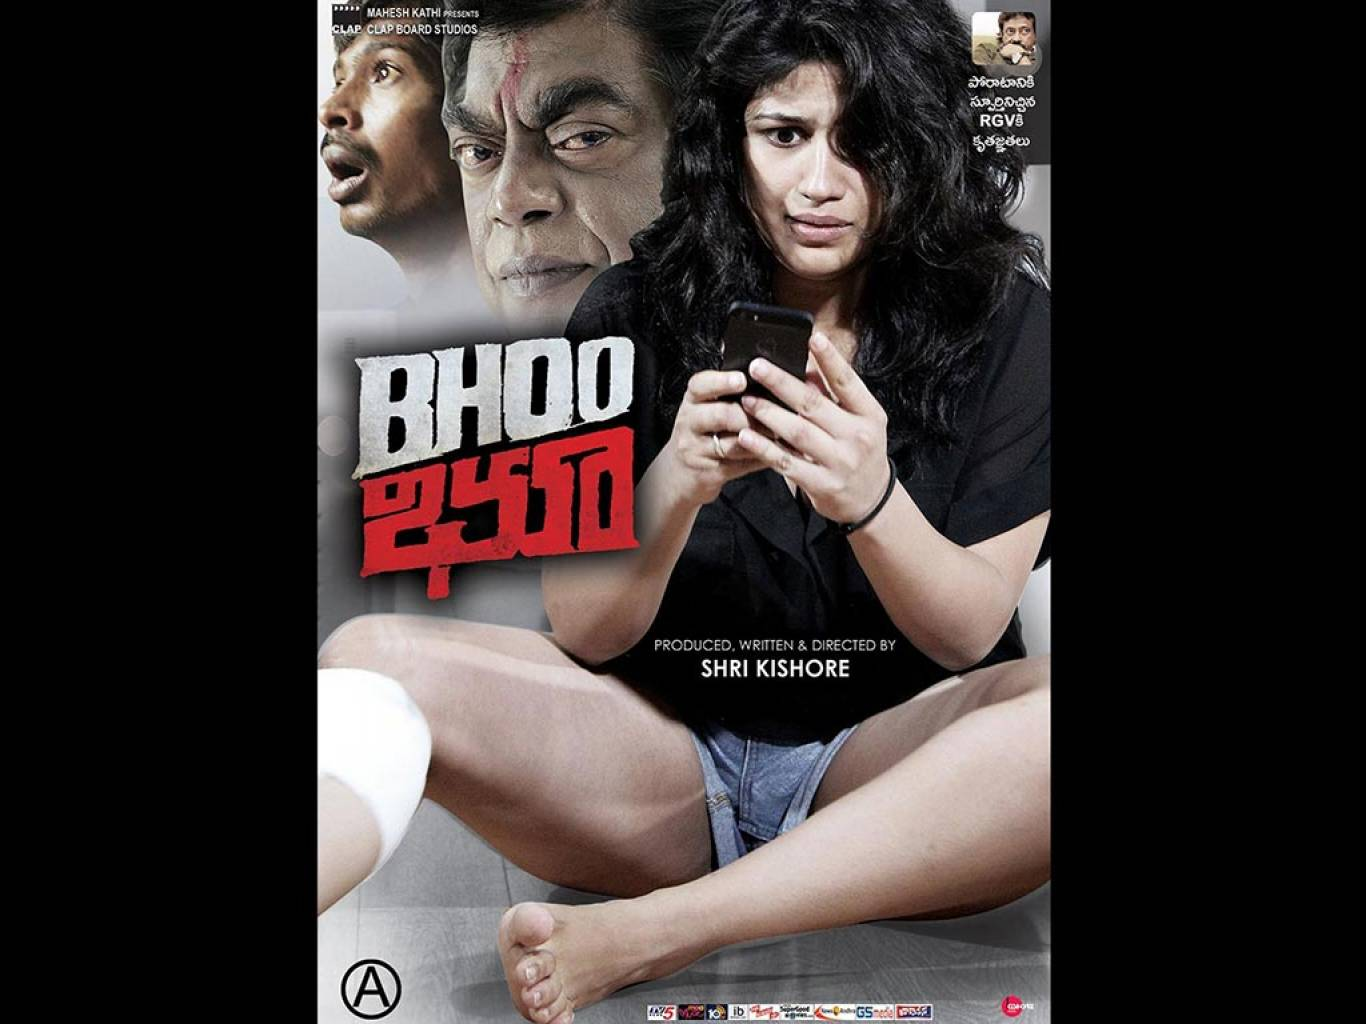 Bhoo Wallpapers